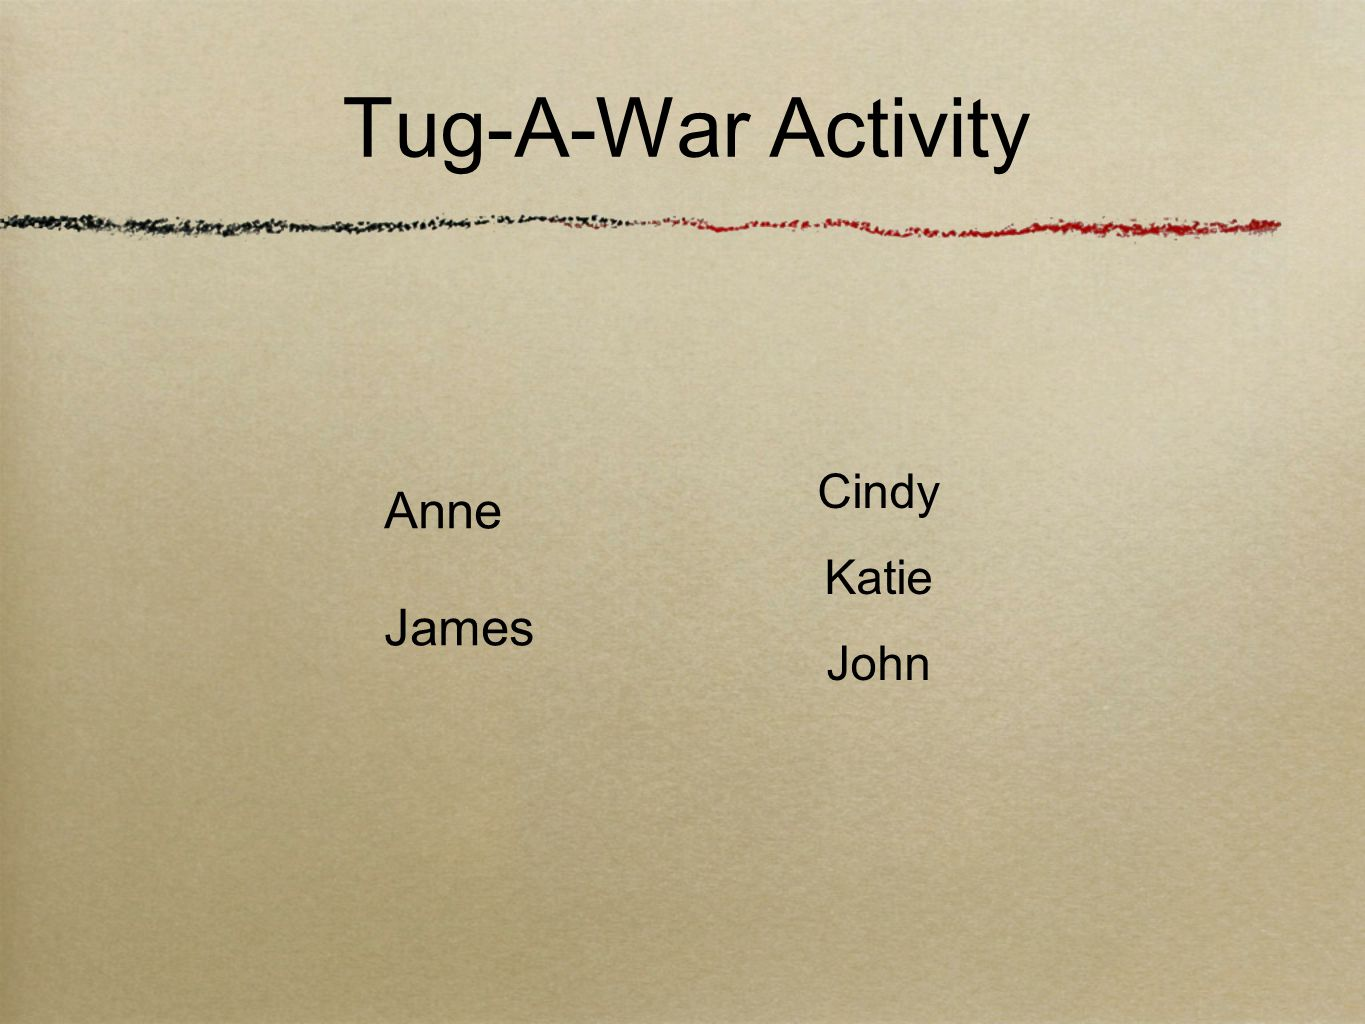 Tug-A-War Activity Anne James Cindy Katie John